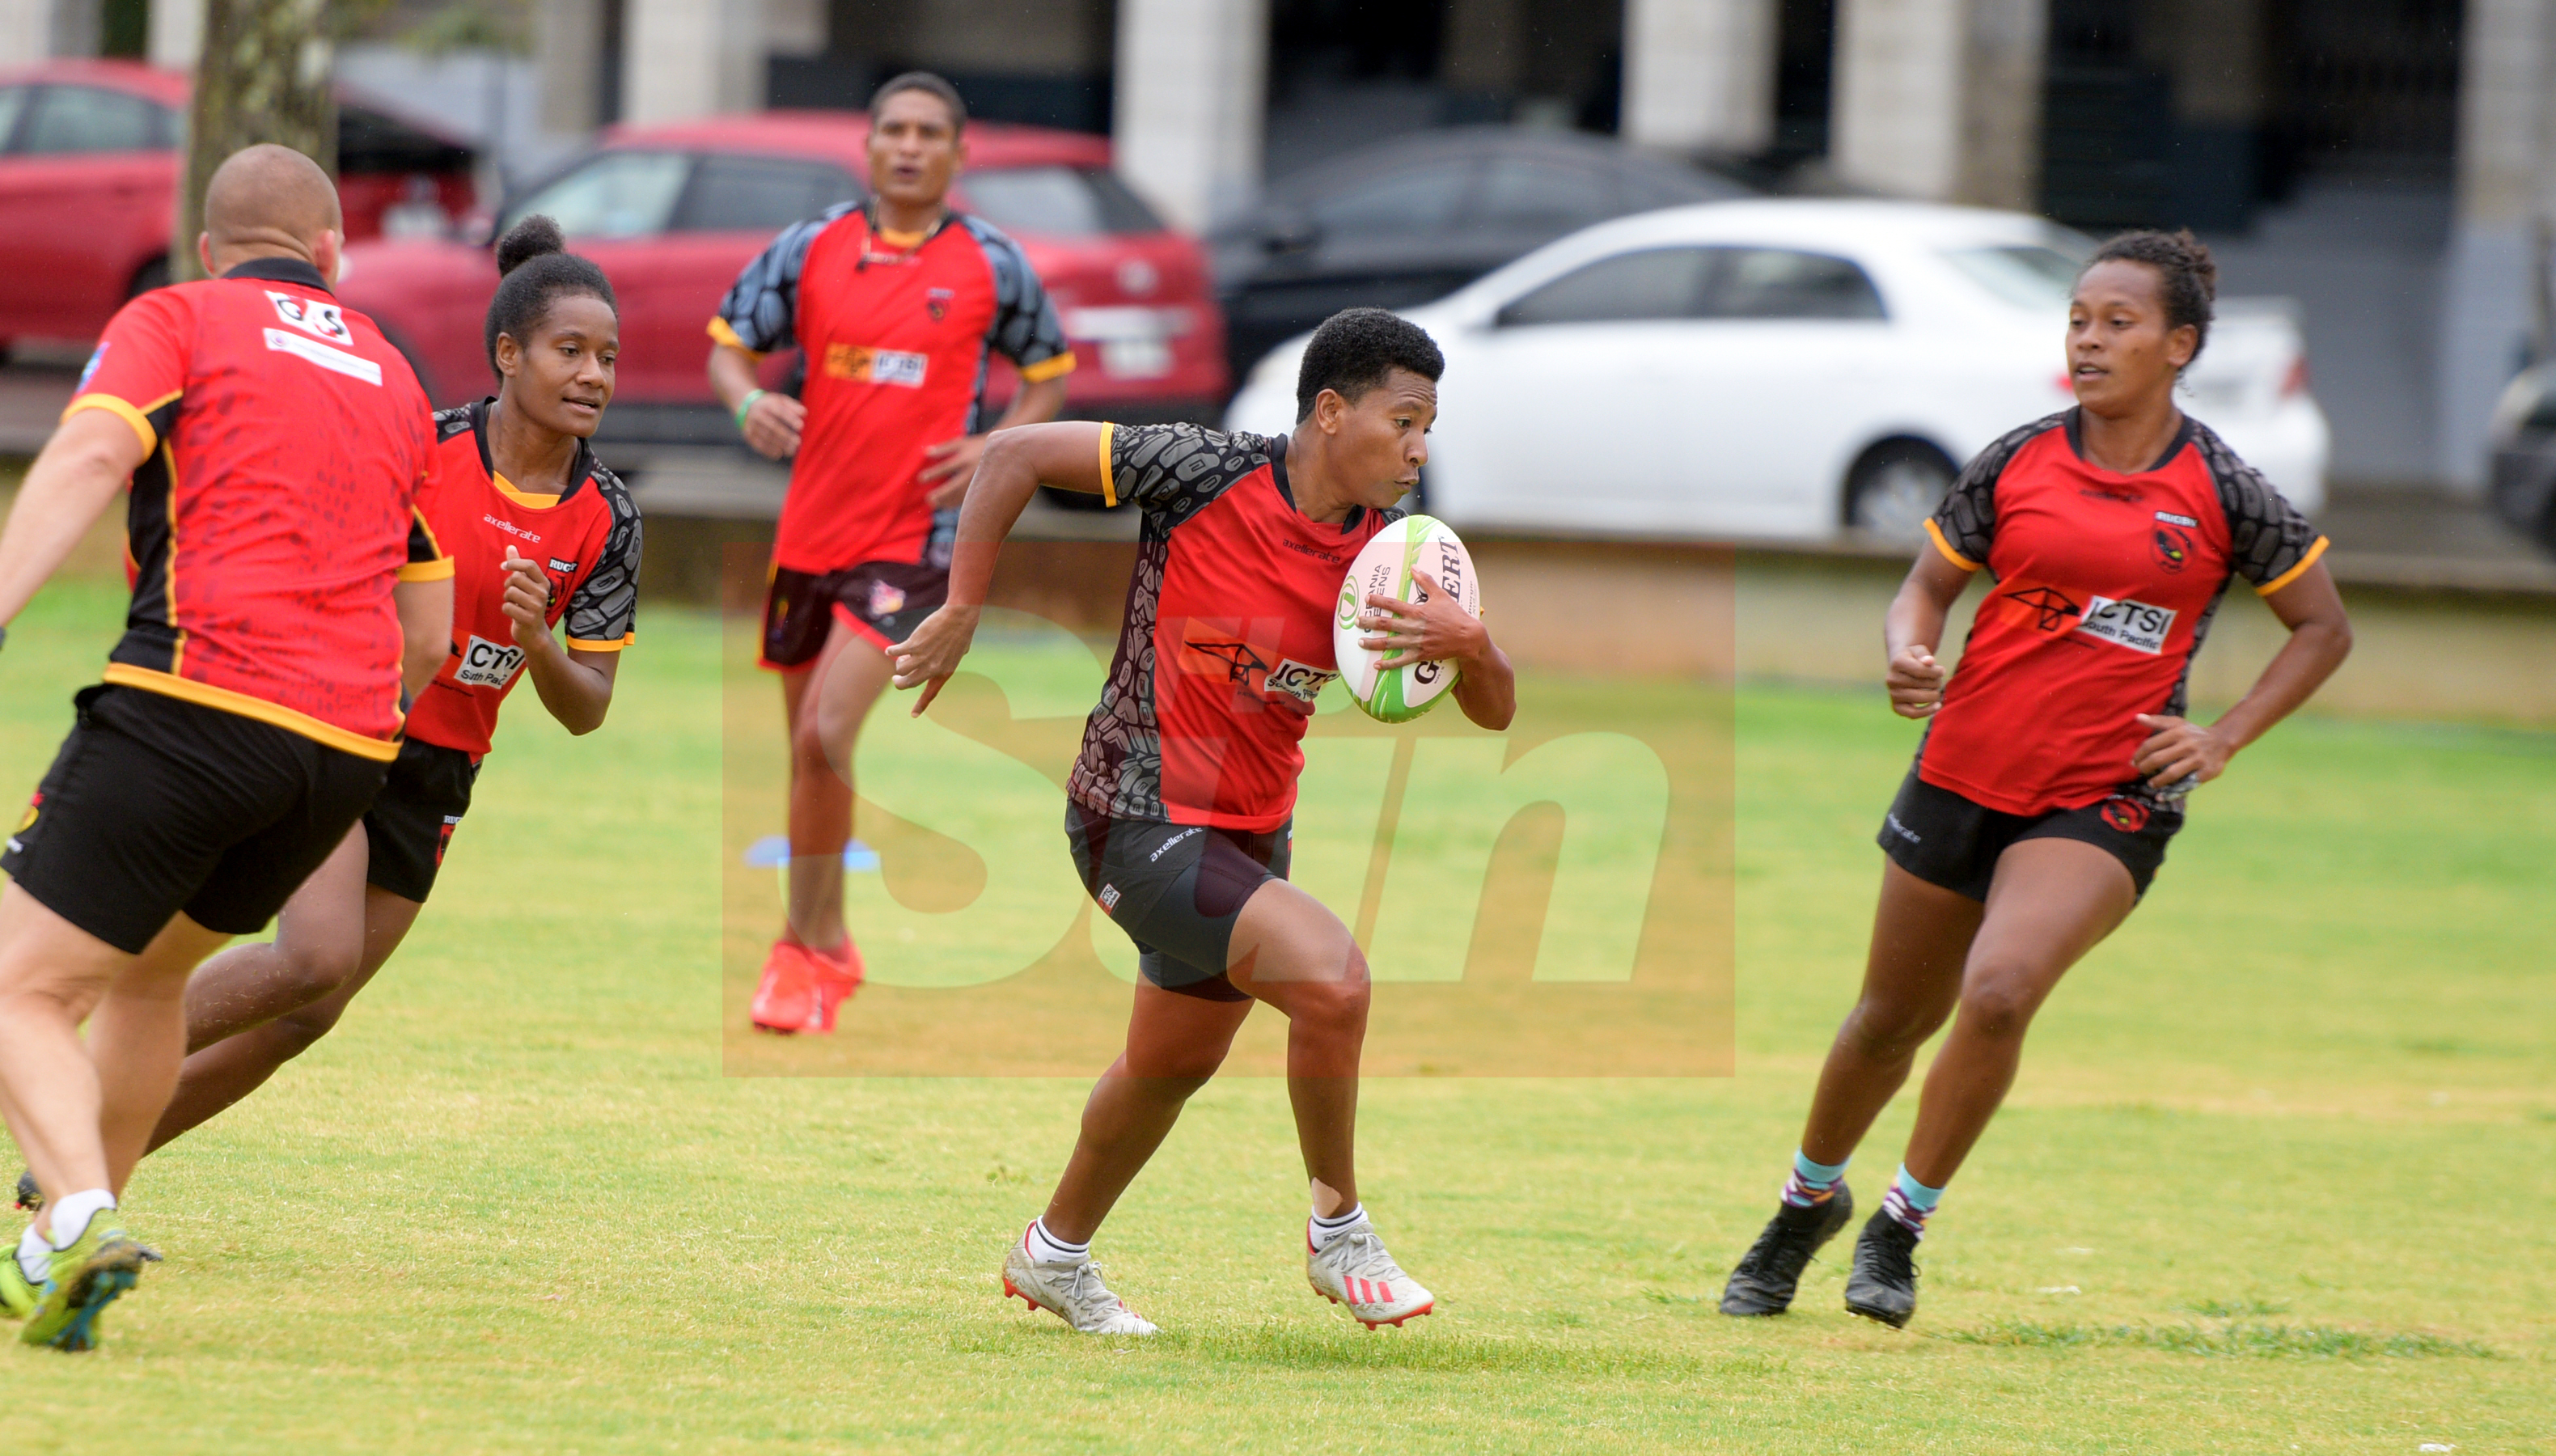 PNG Womens team while training at Albert Park for Oceania Sevens Championship on November 5, 2019. Photo: Ronald Kumar.